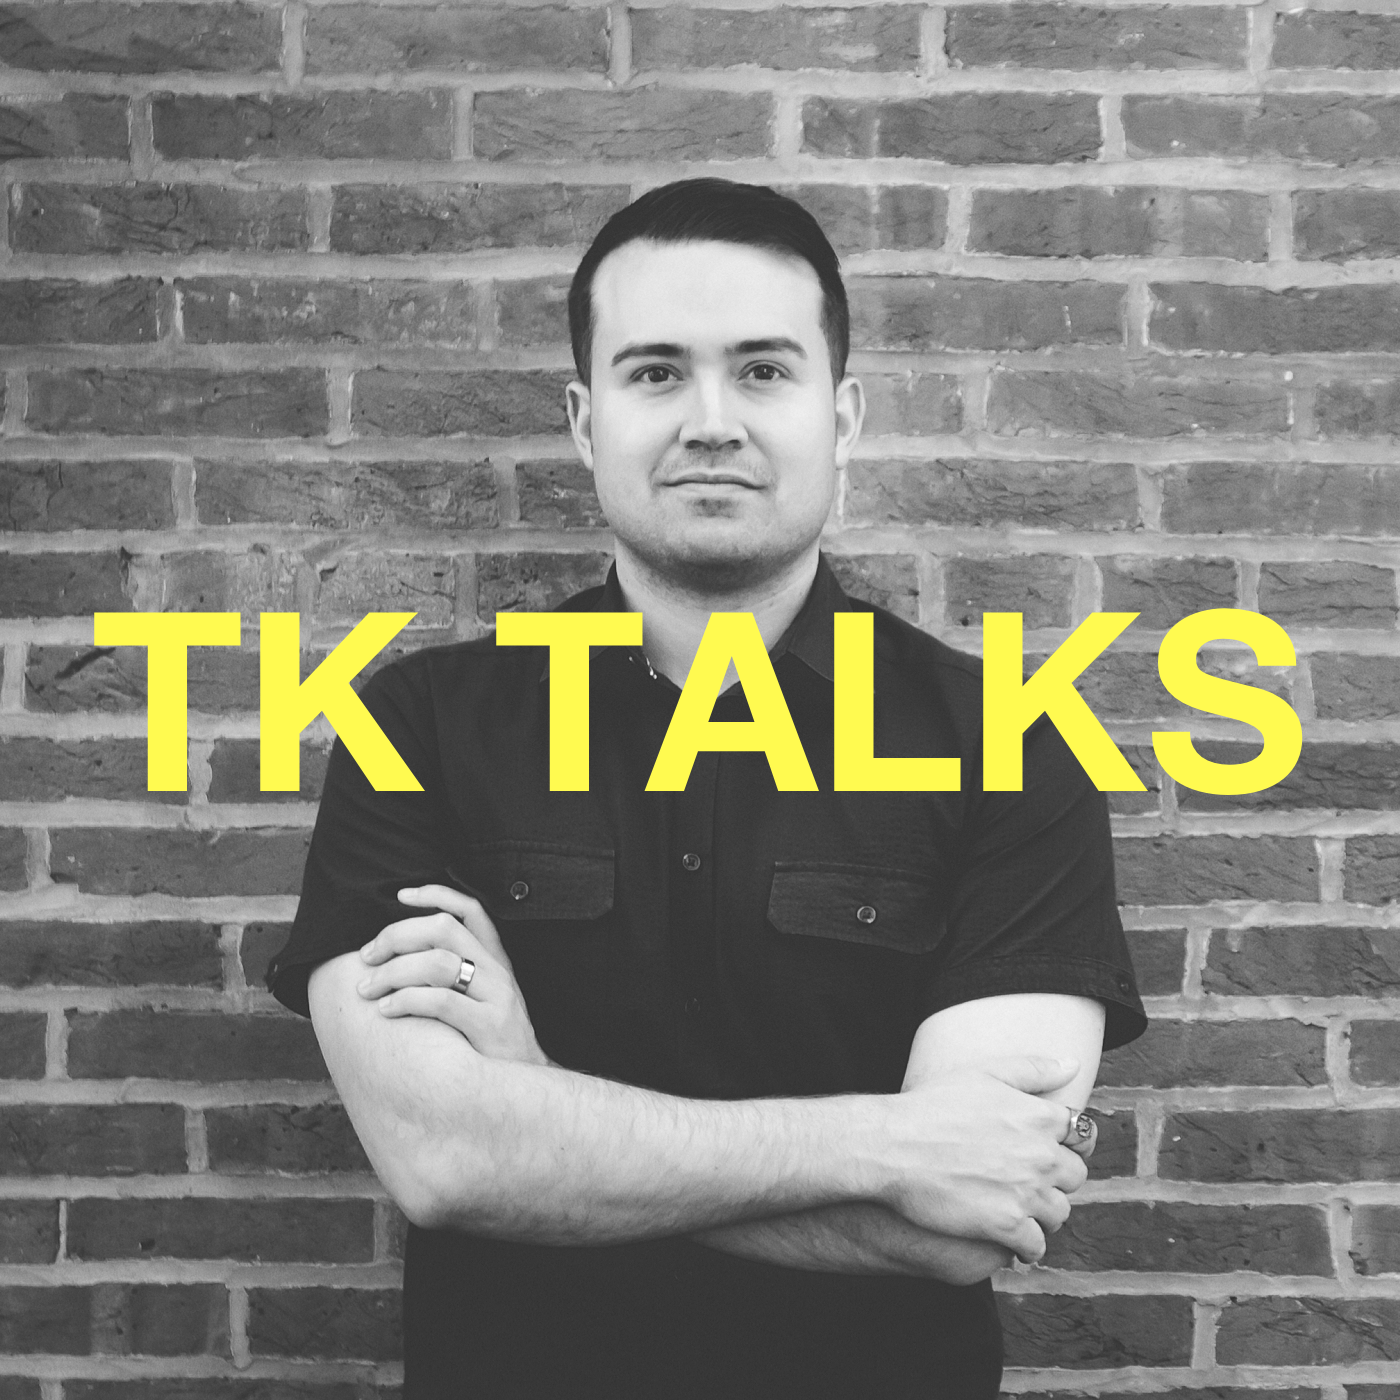 Artwork for TK Talks is one year old now!